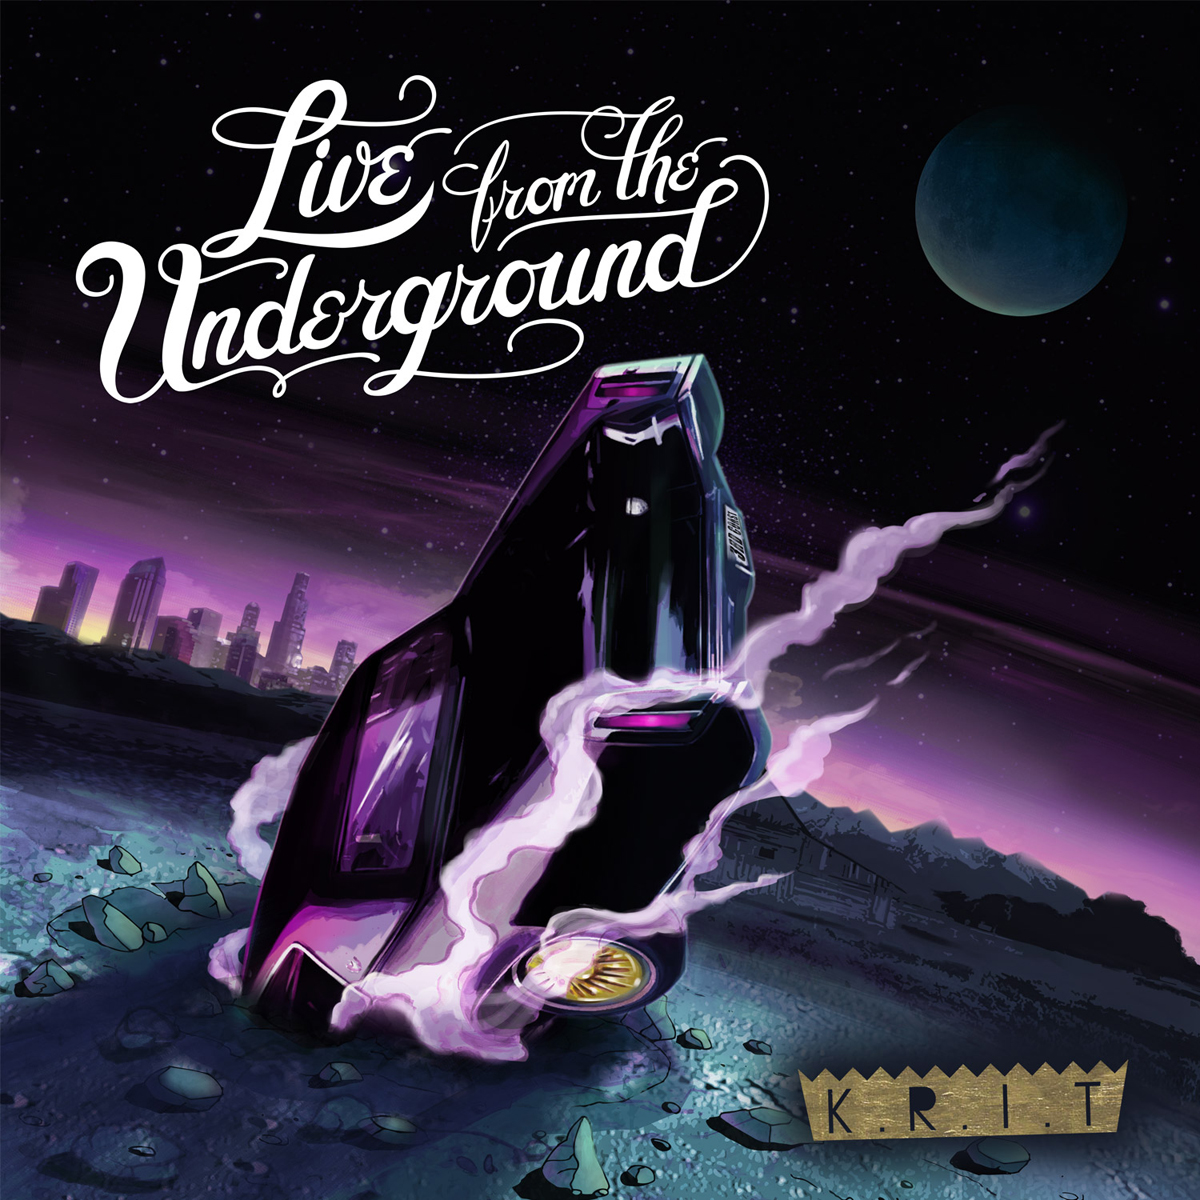 Review: Big K.R.I.T. – Live From the Underground